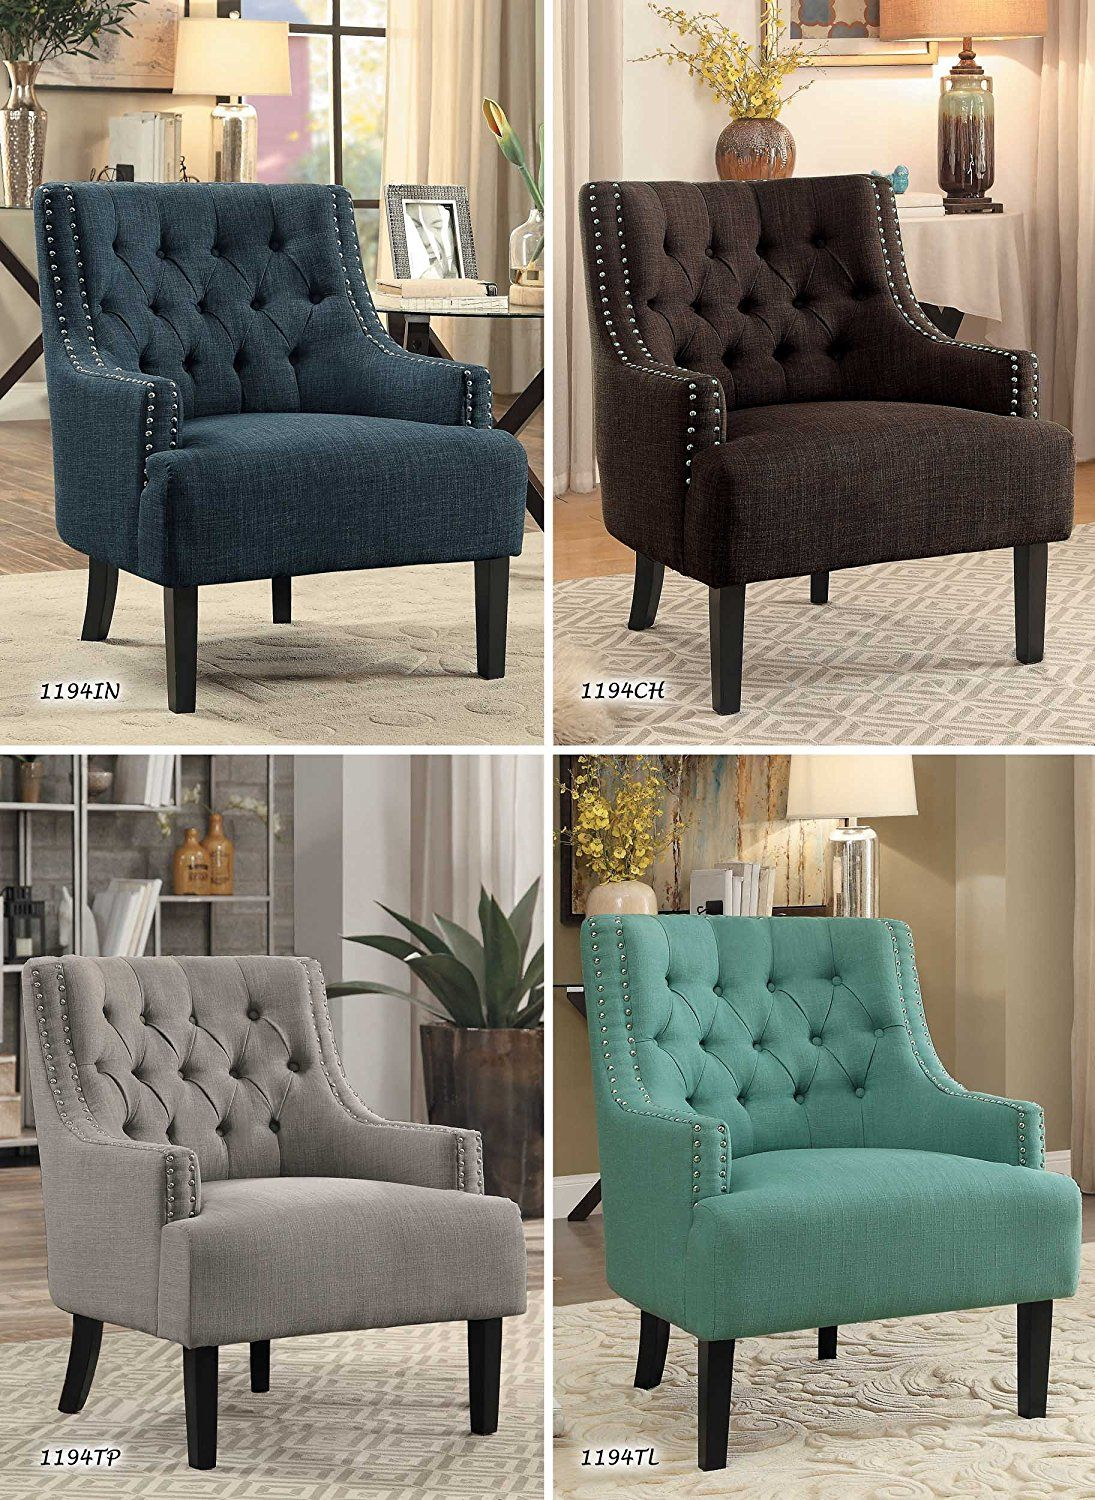 Amazon Com Homelegance Charisma Fabric Uphostered Accent Chair Taupe Kitchen Dining Living Room Sofa Design Grey Home Decor Master Bedrooms Decor